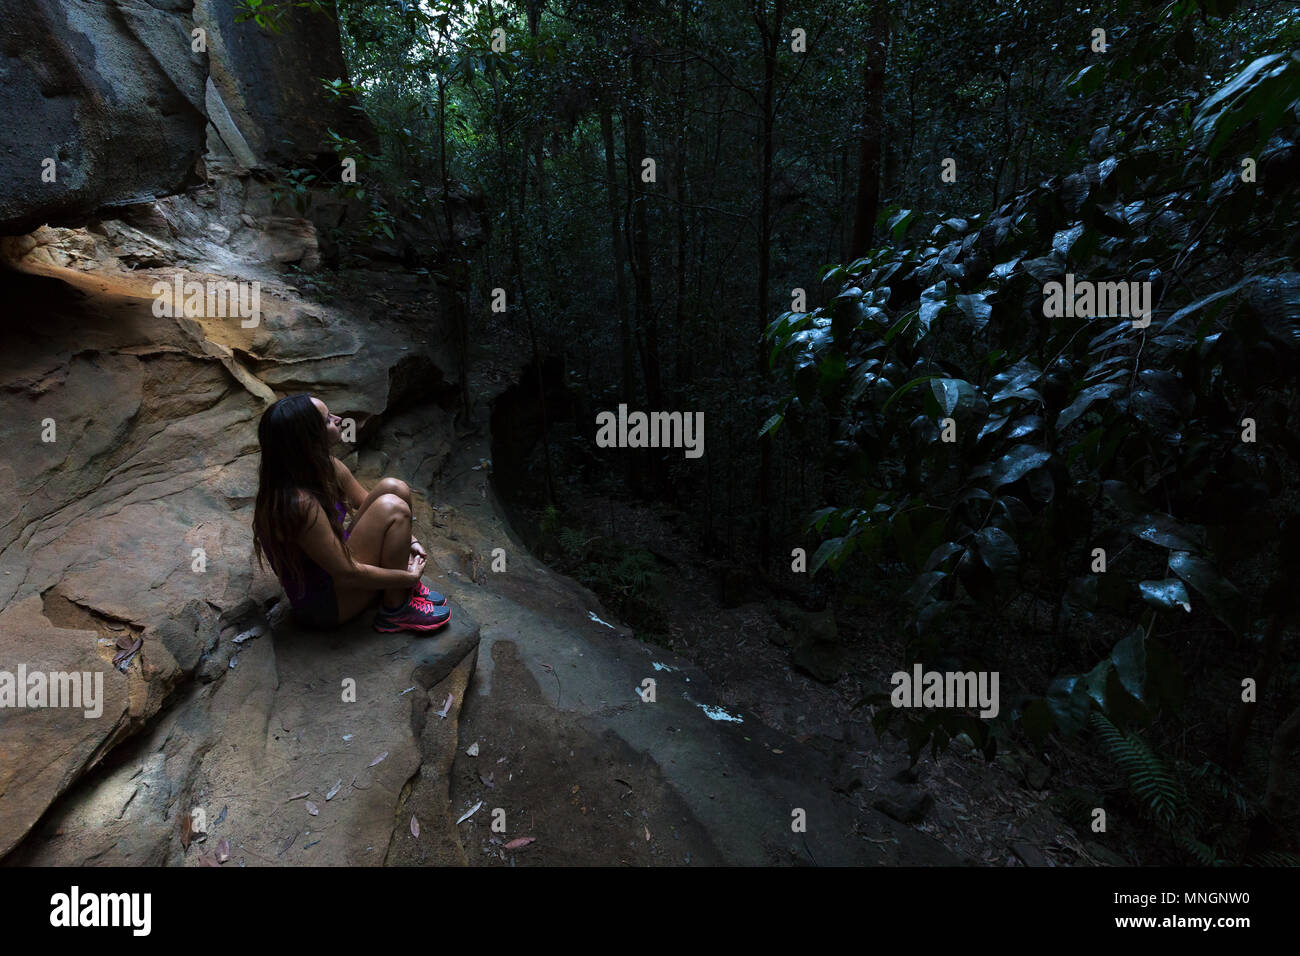 A pretty, beautiful girl hugs her knees in a dark, dimly lit forest in the Blue Mountains, Australia. - Stock Image